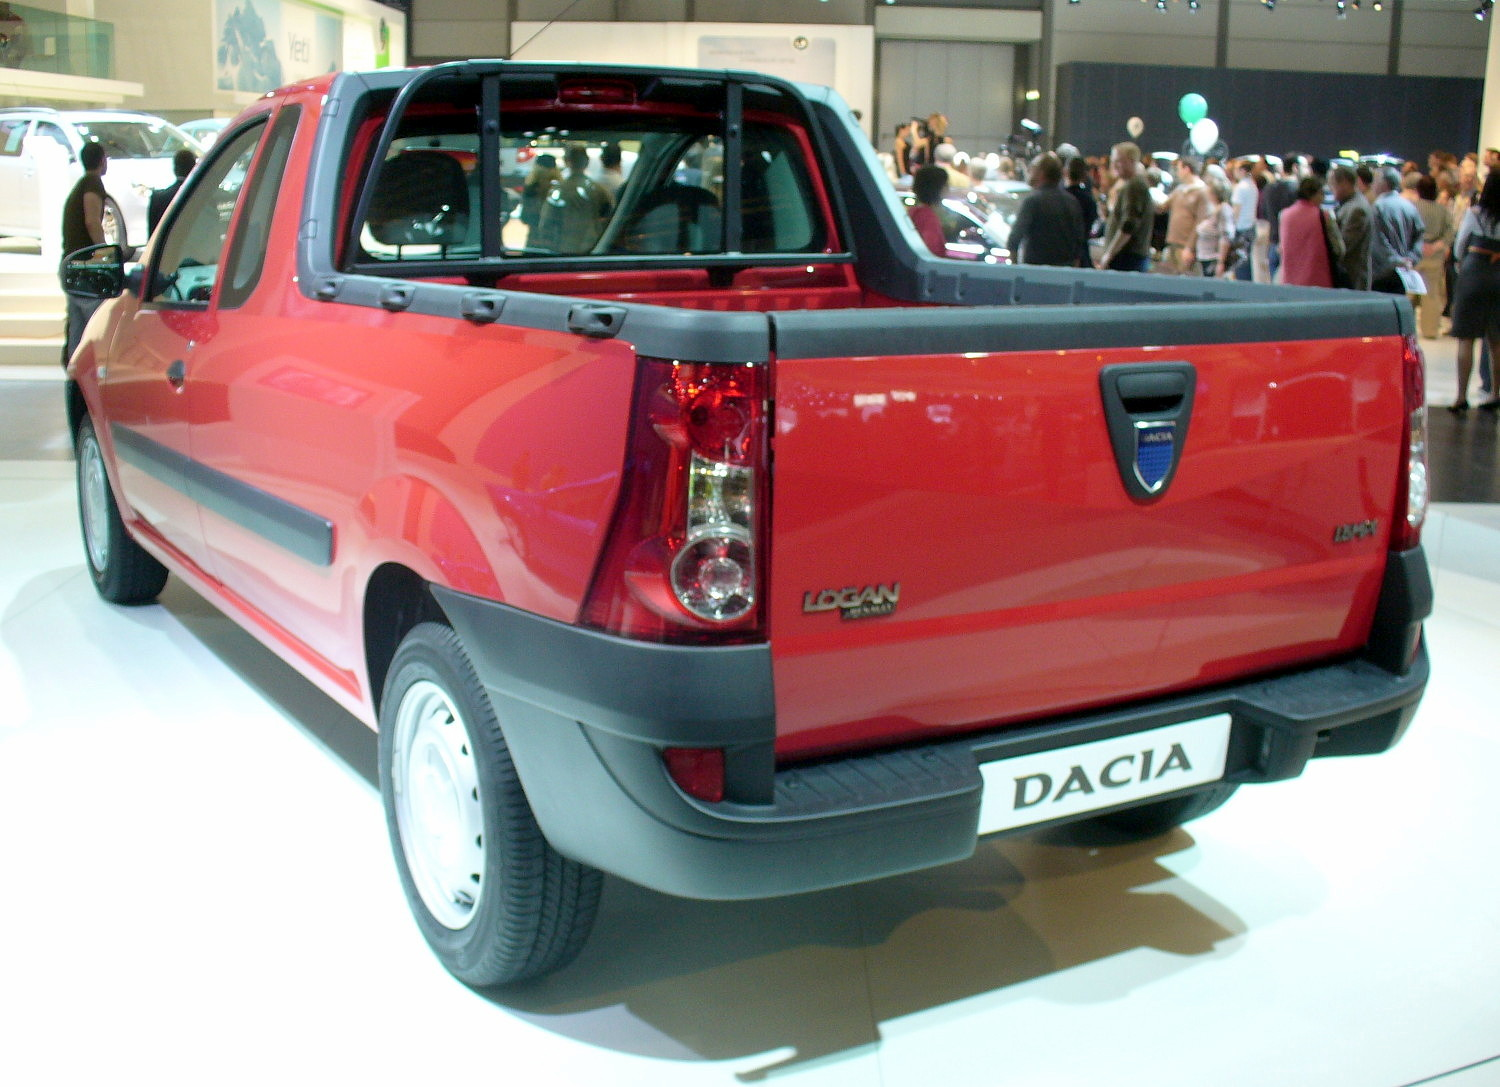 dacia logan pick up technical details history photos on better parts ltd. Black Bedroom Furniture Sets. Home Design Ideas